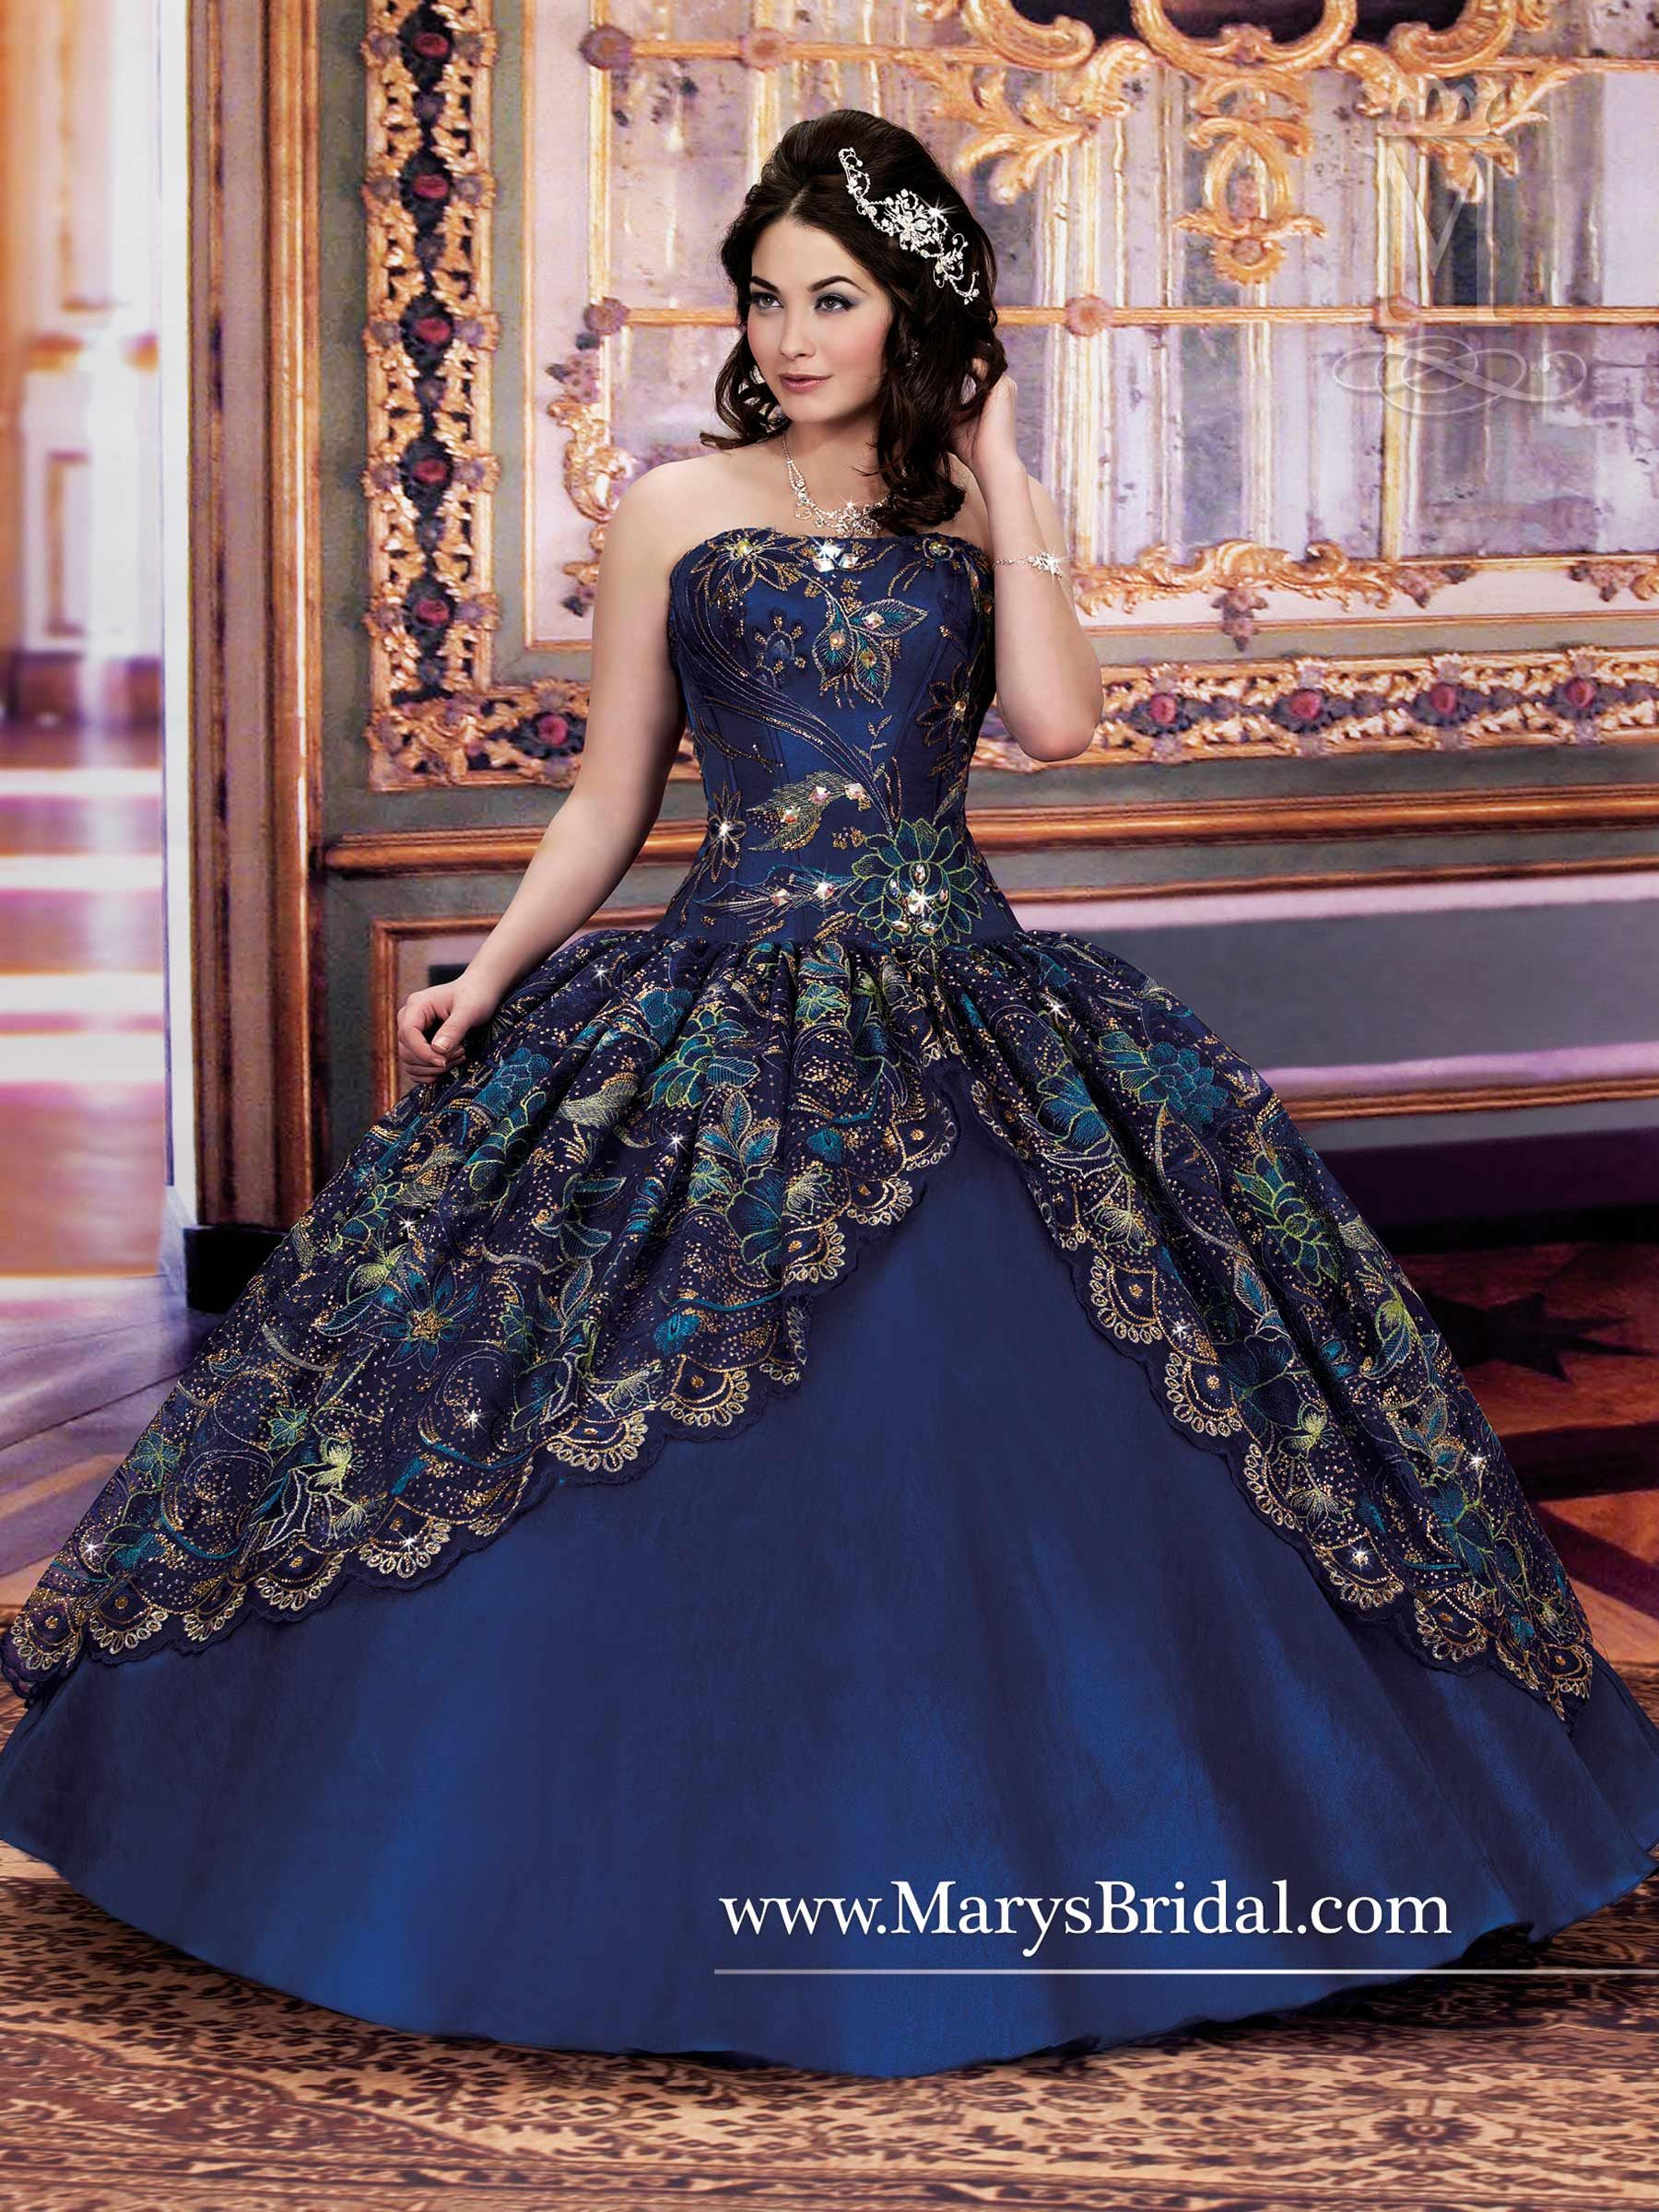 583a572bbf7 MY FAVORITE! Royal blue organza Quinceanera -Mary s Bridal Gowns ...